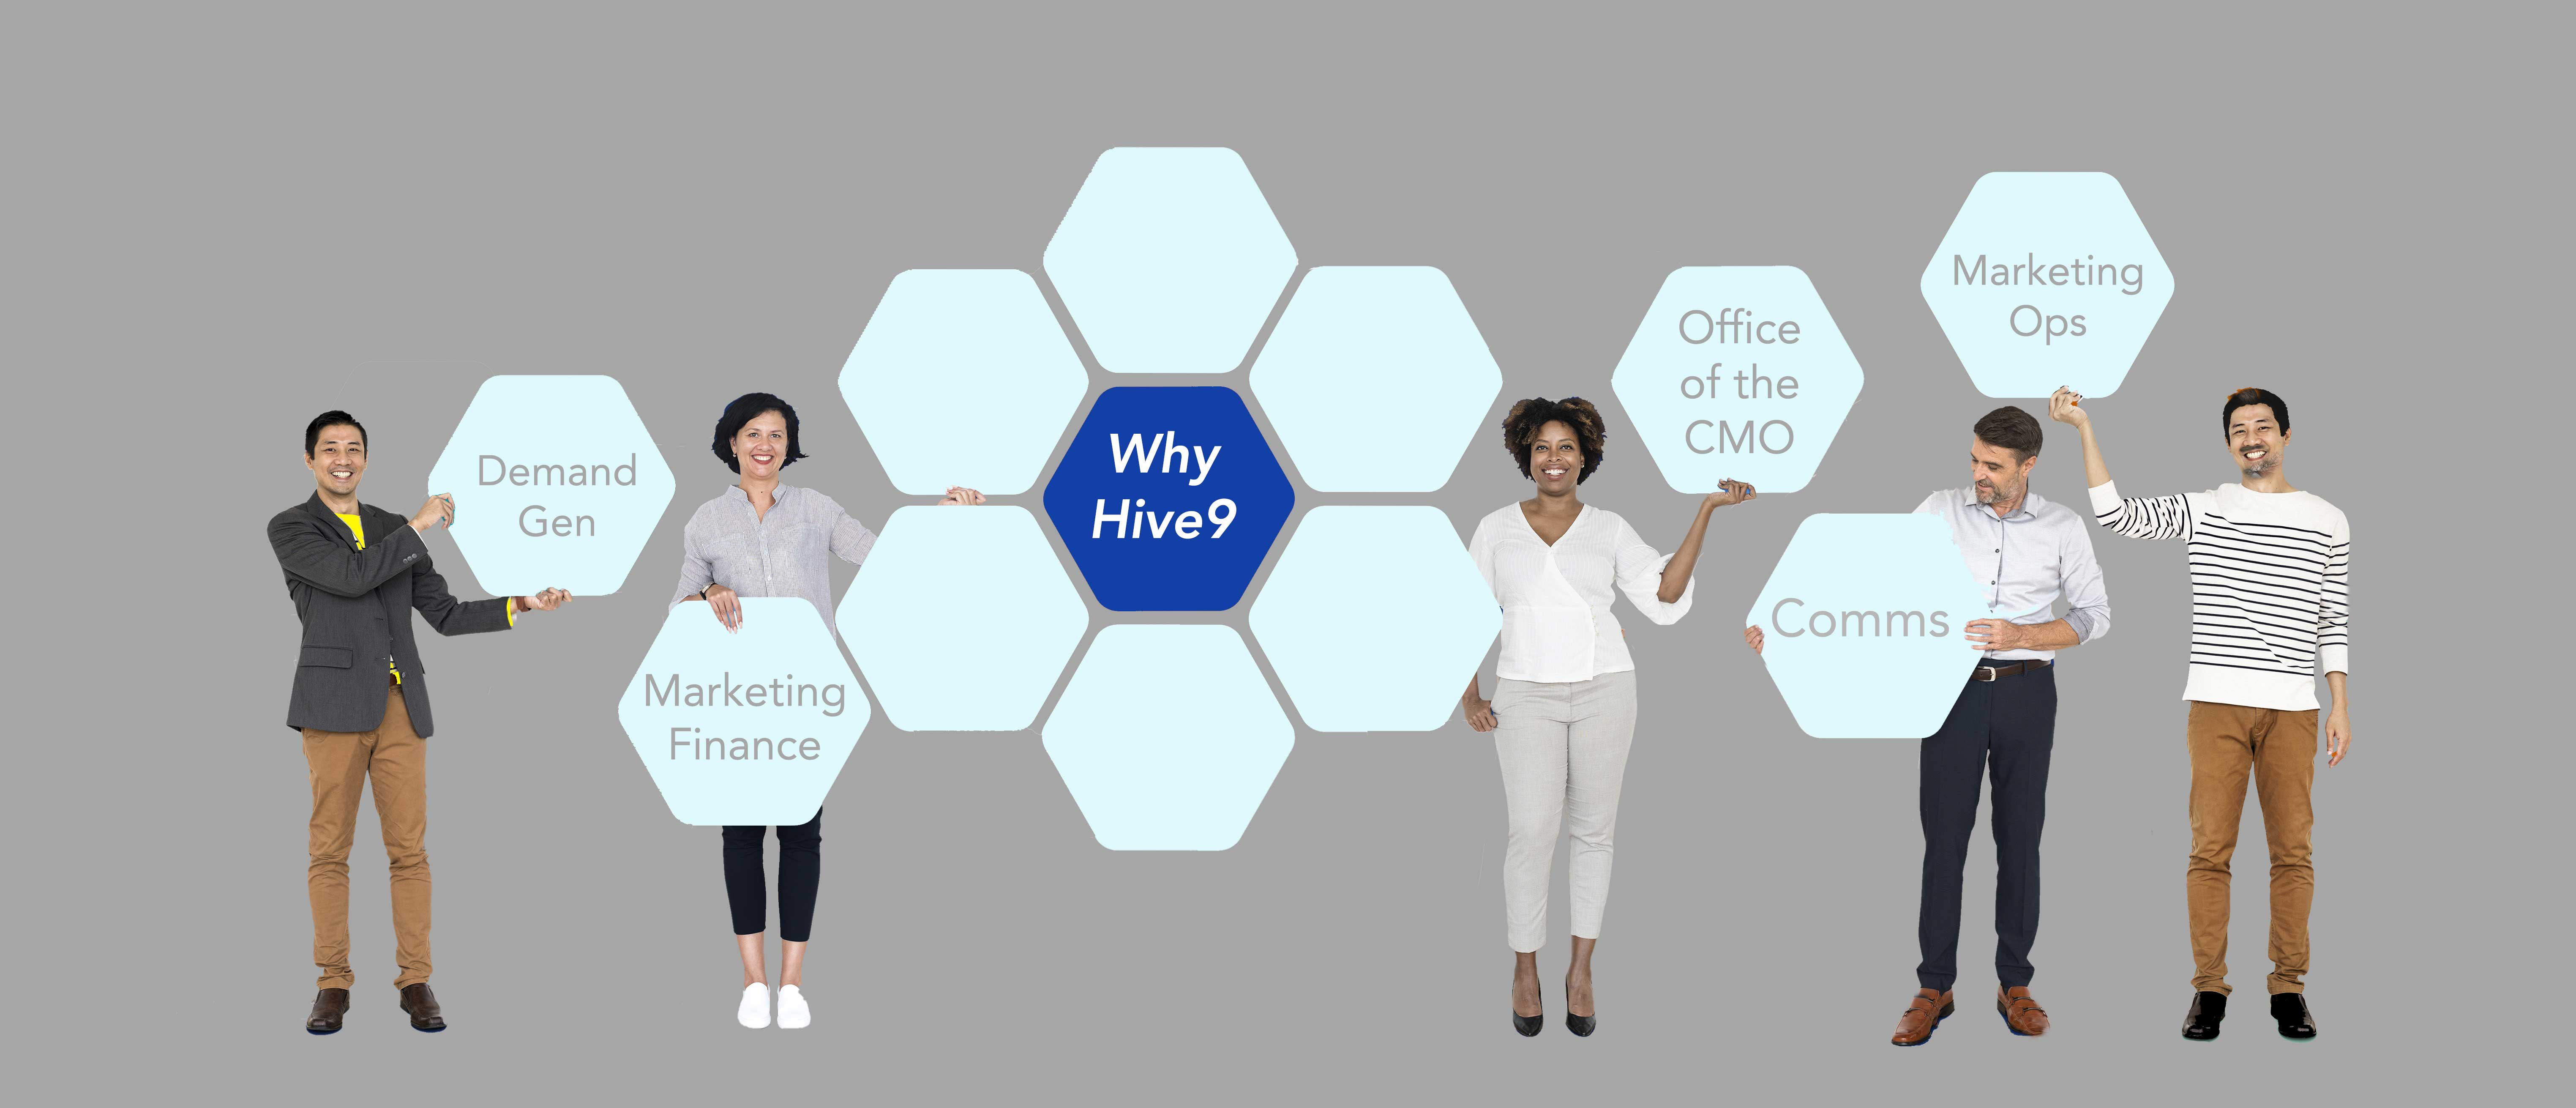 New-Why-Hive9-Banner